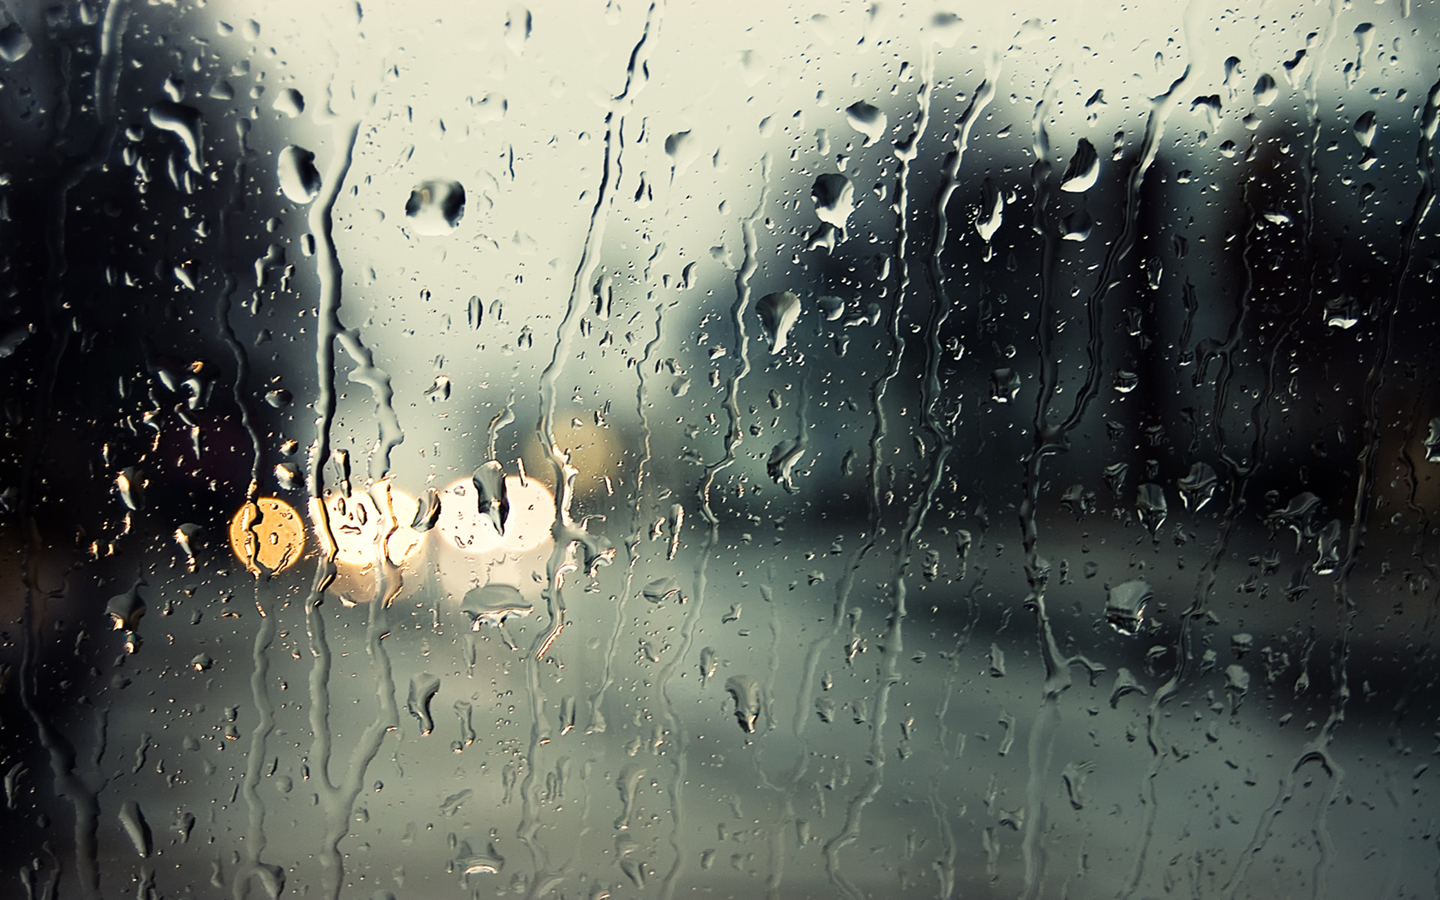 Rainy Day Wallpaper | All Size Wallpapers